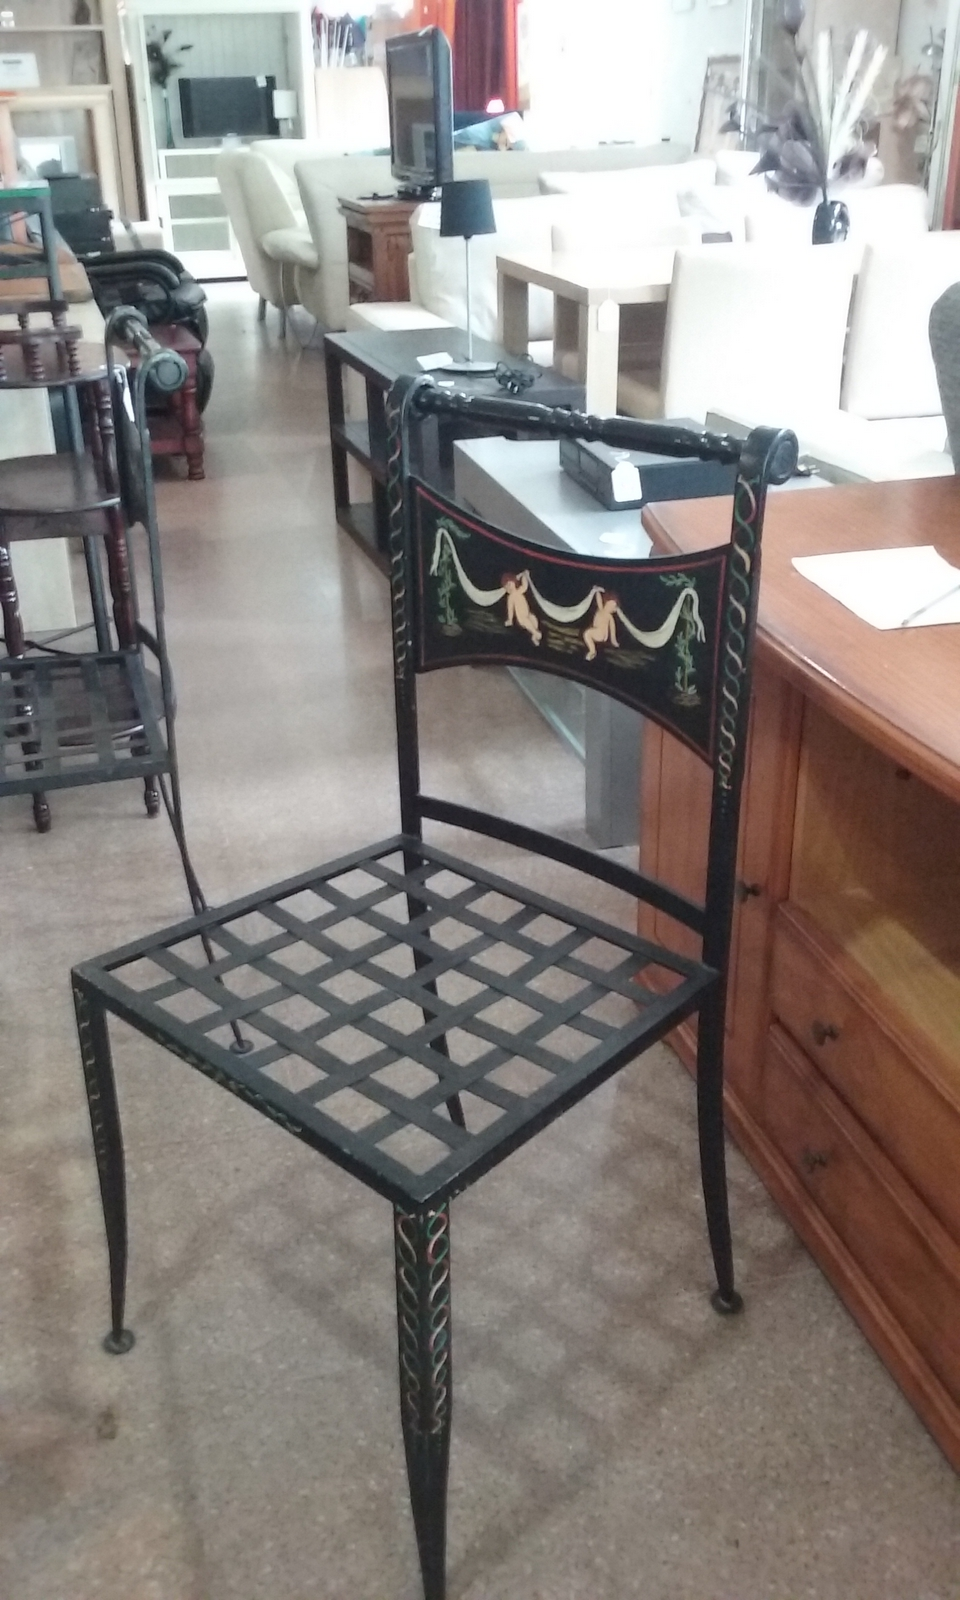 New2you furniture second hand tables chairs for the dining room living room ref g425 - Second hand dining room tables ...